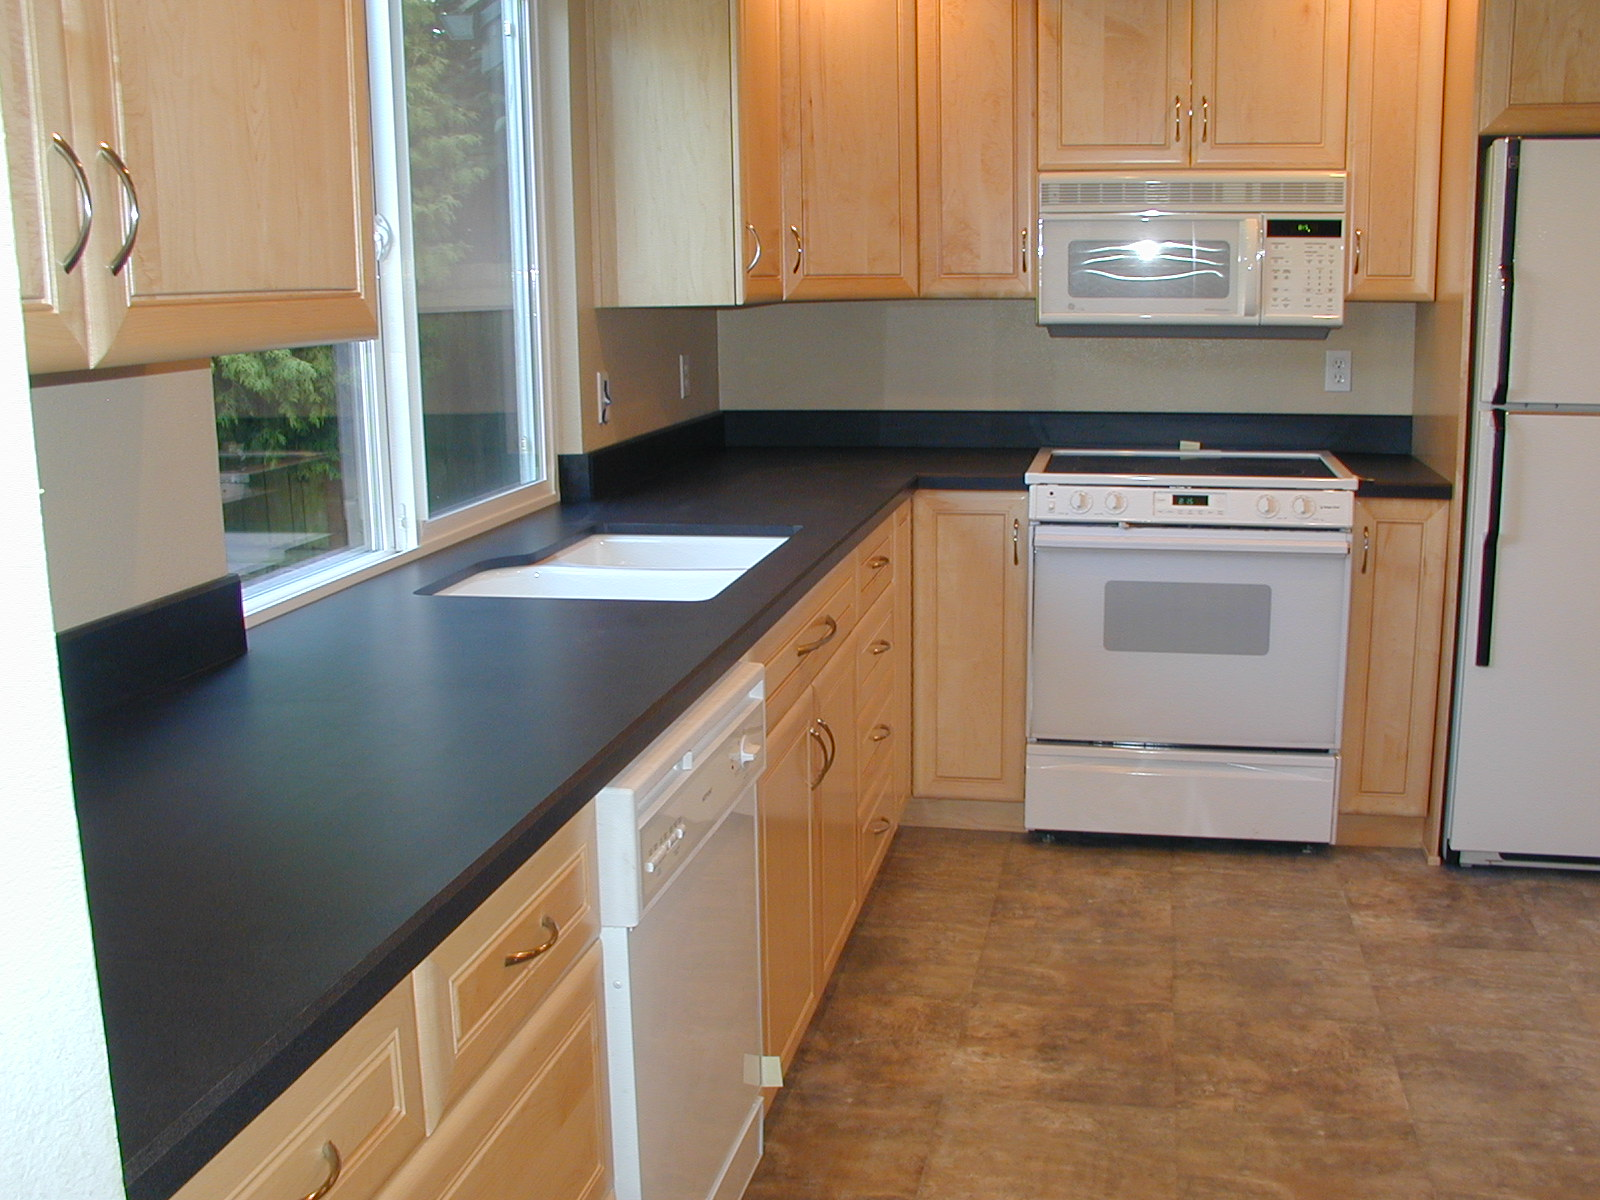 Laminate Bar Countertops : countertop design and installation, laminate kitchen countertop ...